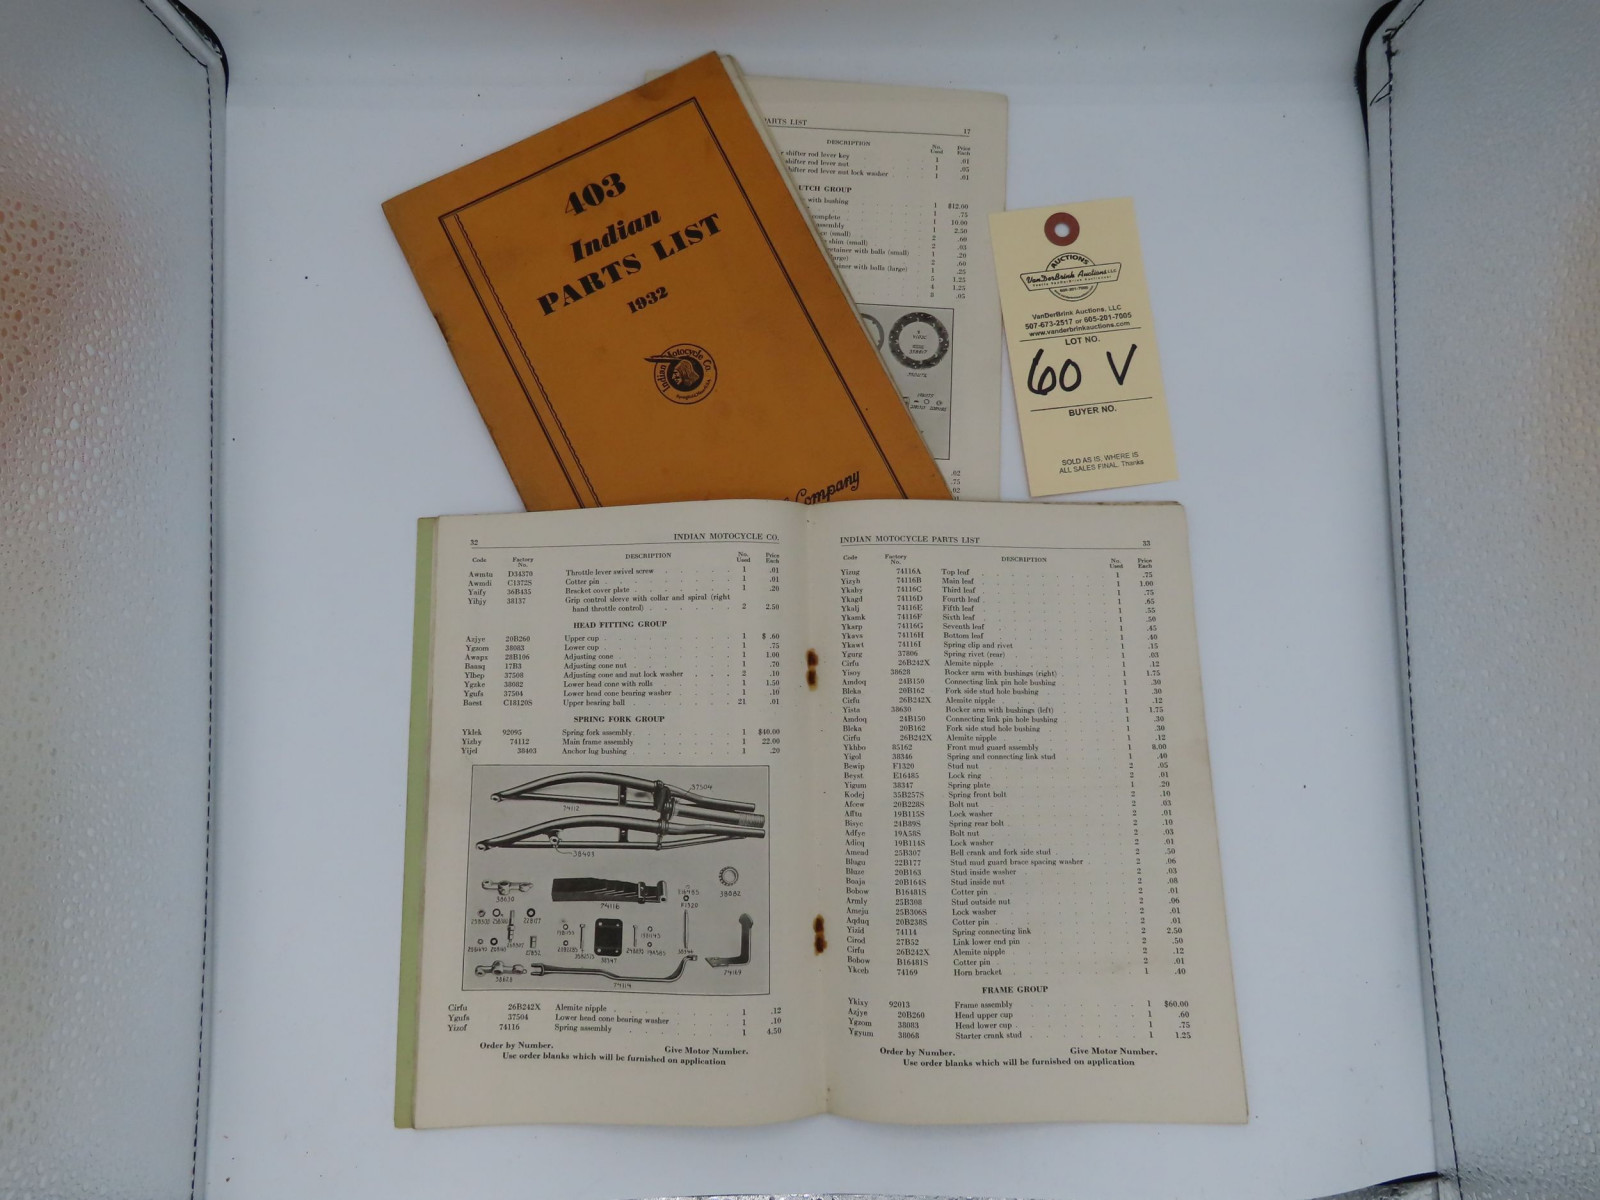 Indian Parts List Manual - Image 2